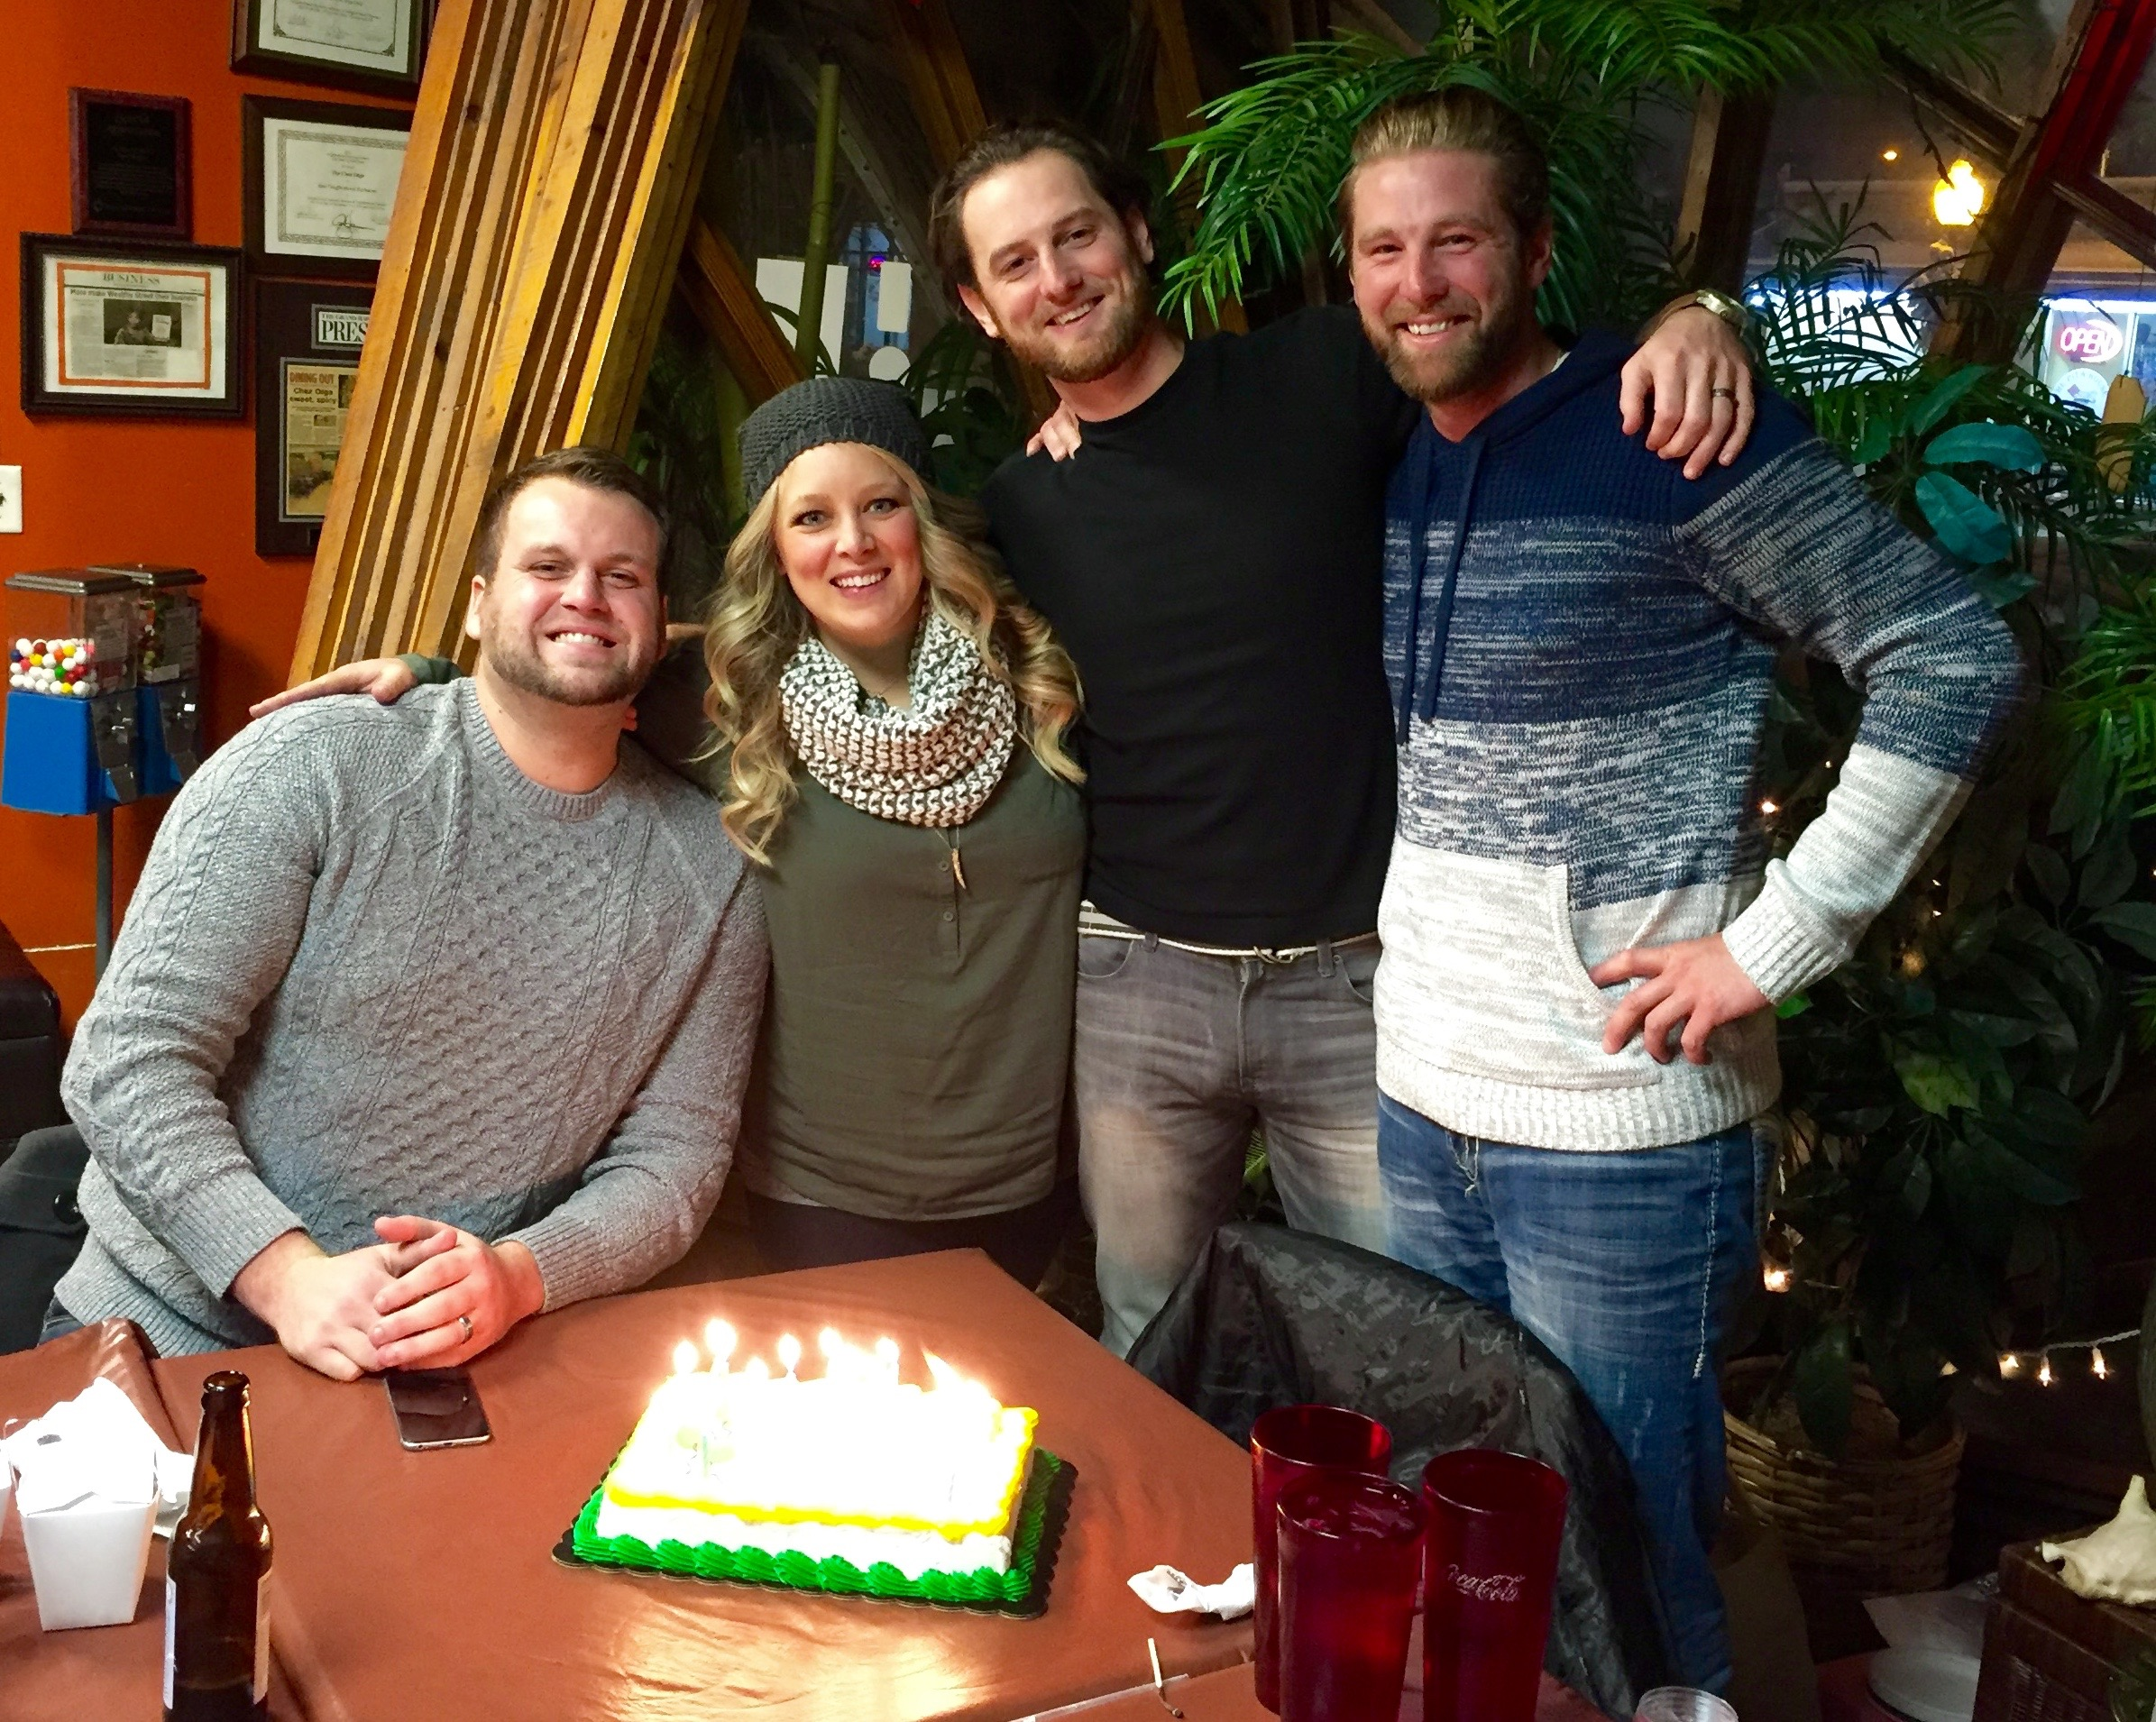 The birthday gang: Marcus, Jessica, Jeff and Cody.